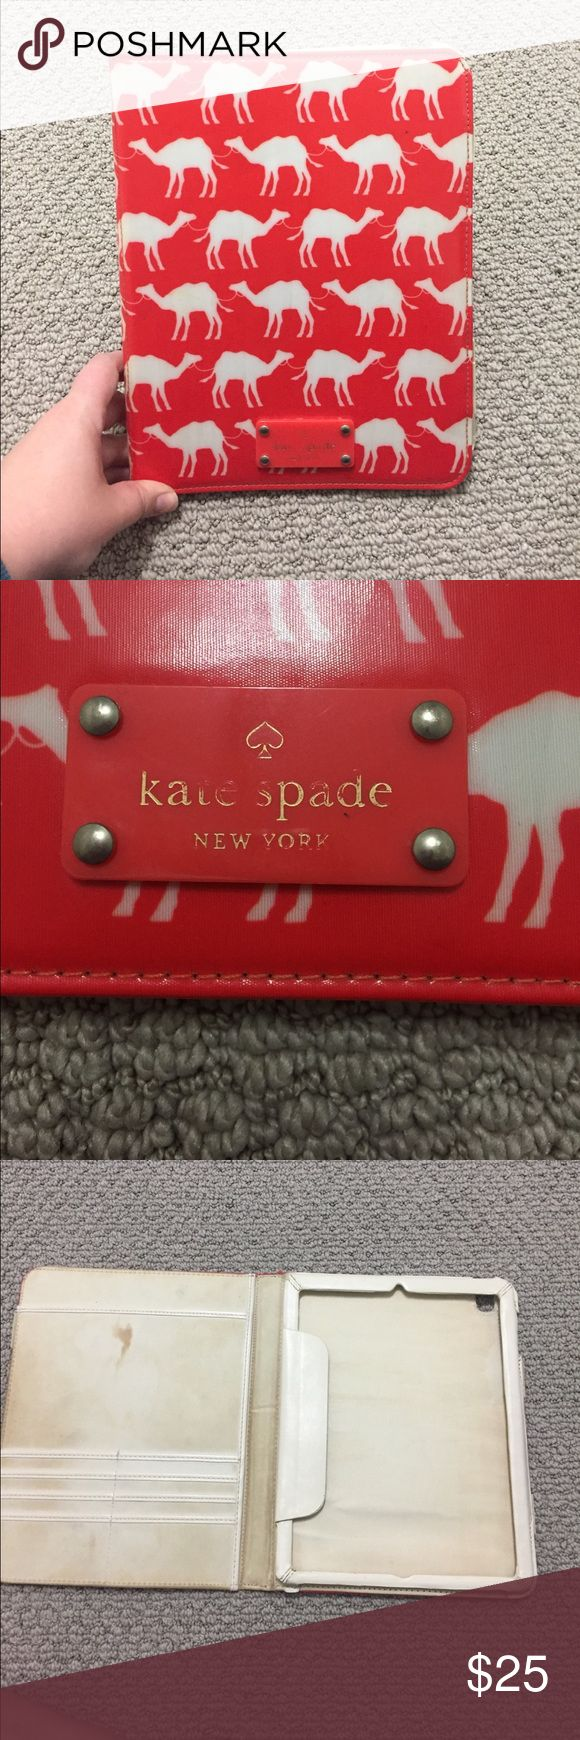 Kate spade iPad case Adorable Kate spade iPad case with camel print. Some wear on the front nameplate, pictured, as well as wear inside. Comes with pouches on the inner flap to hold cards and papers. kate spade Accessories Tablet Cases